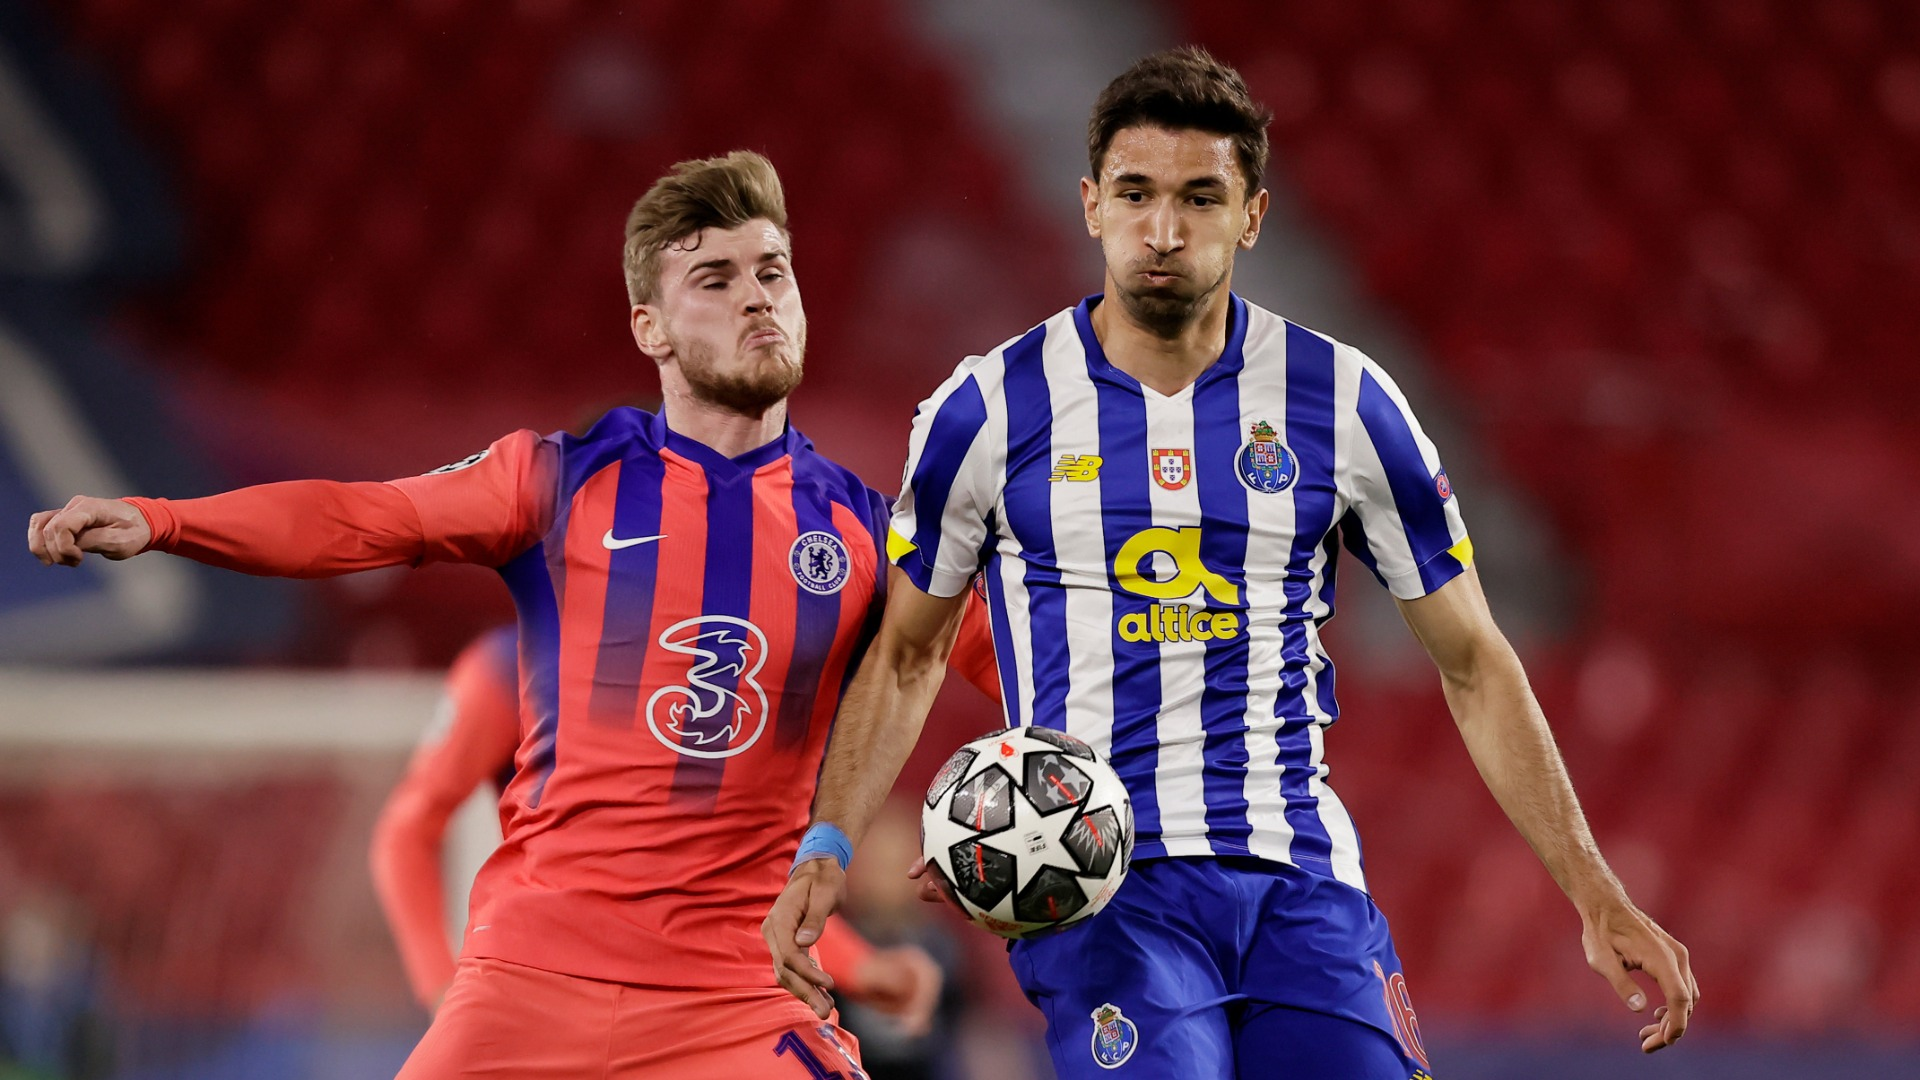 Marko Grujic and Sergio Conceicao both felt Porto deserved more from their first leg against Chelsea, but they are not giving up hope.